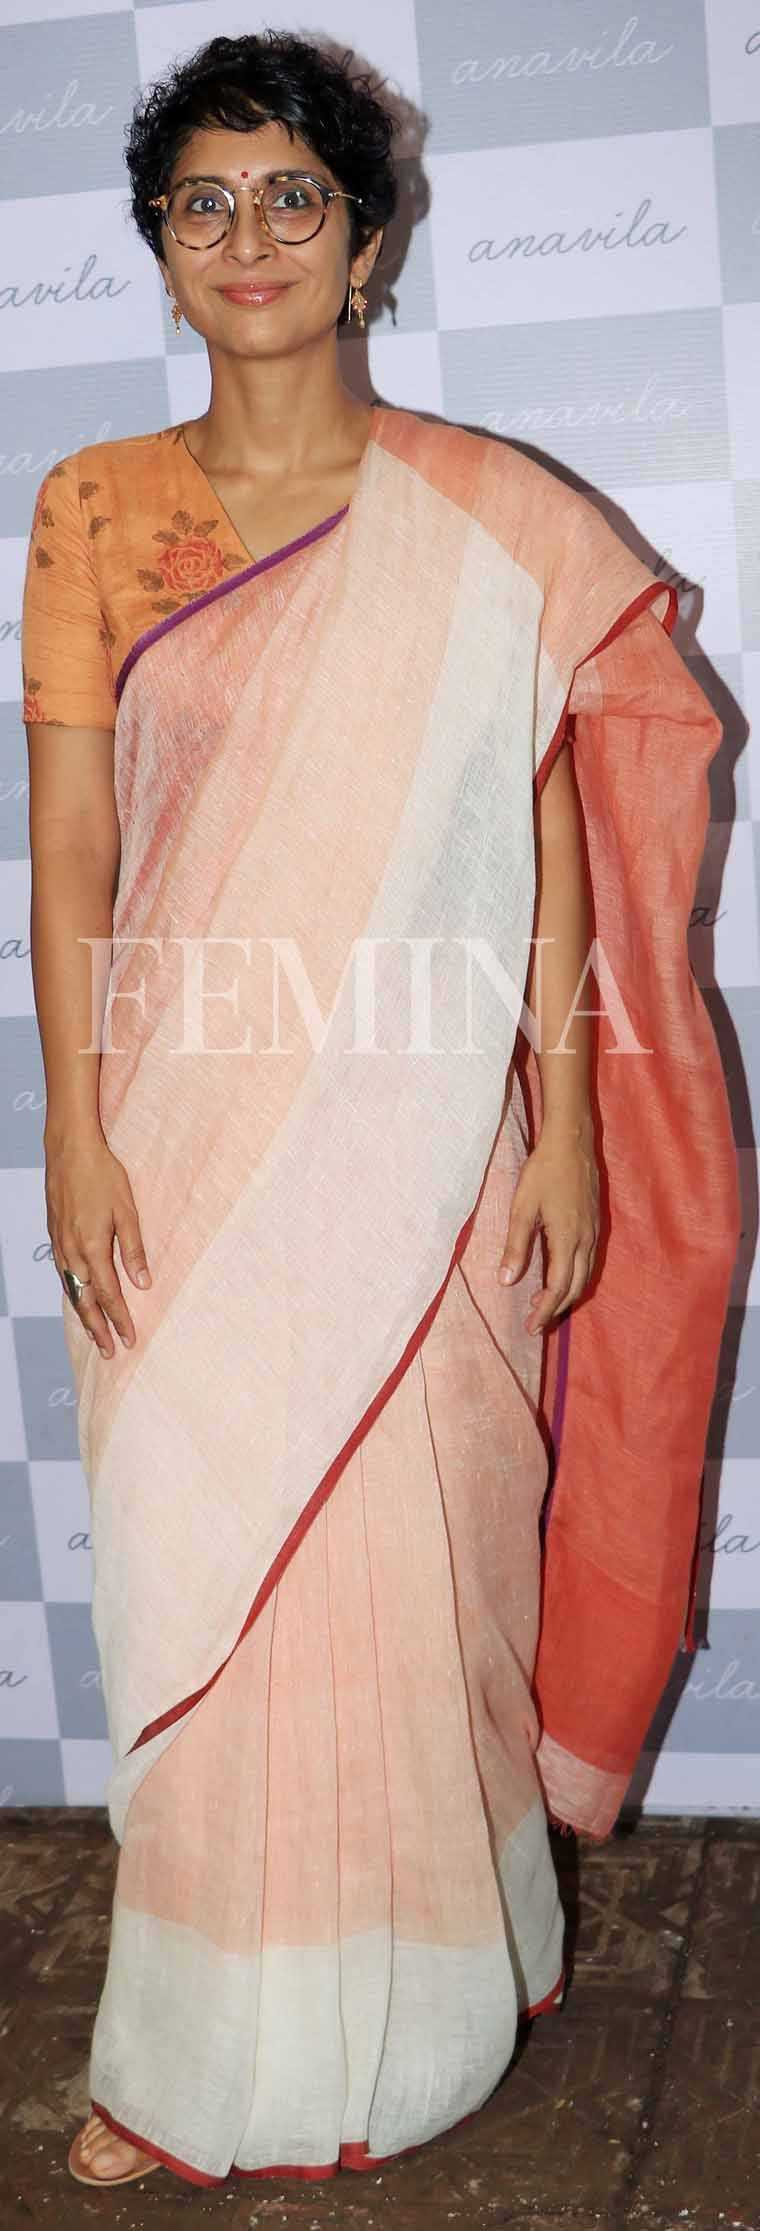 KIRAN RAO Also wearing Anavila, Kiran showed us how a printed blouse can elevate even the simplest handwoven sari.